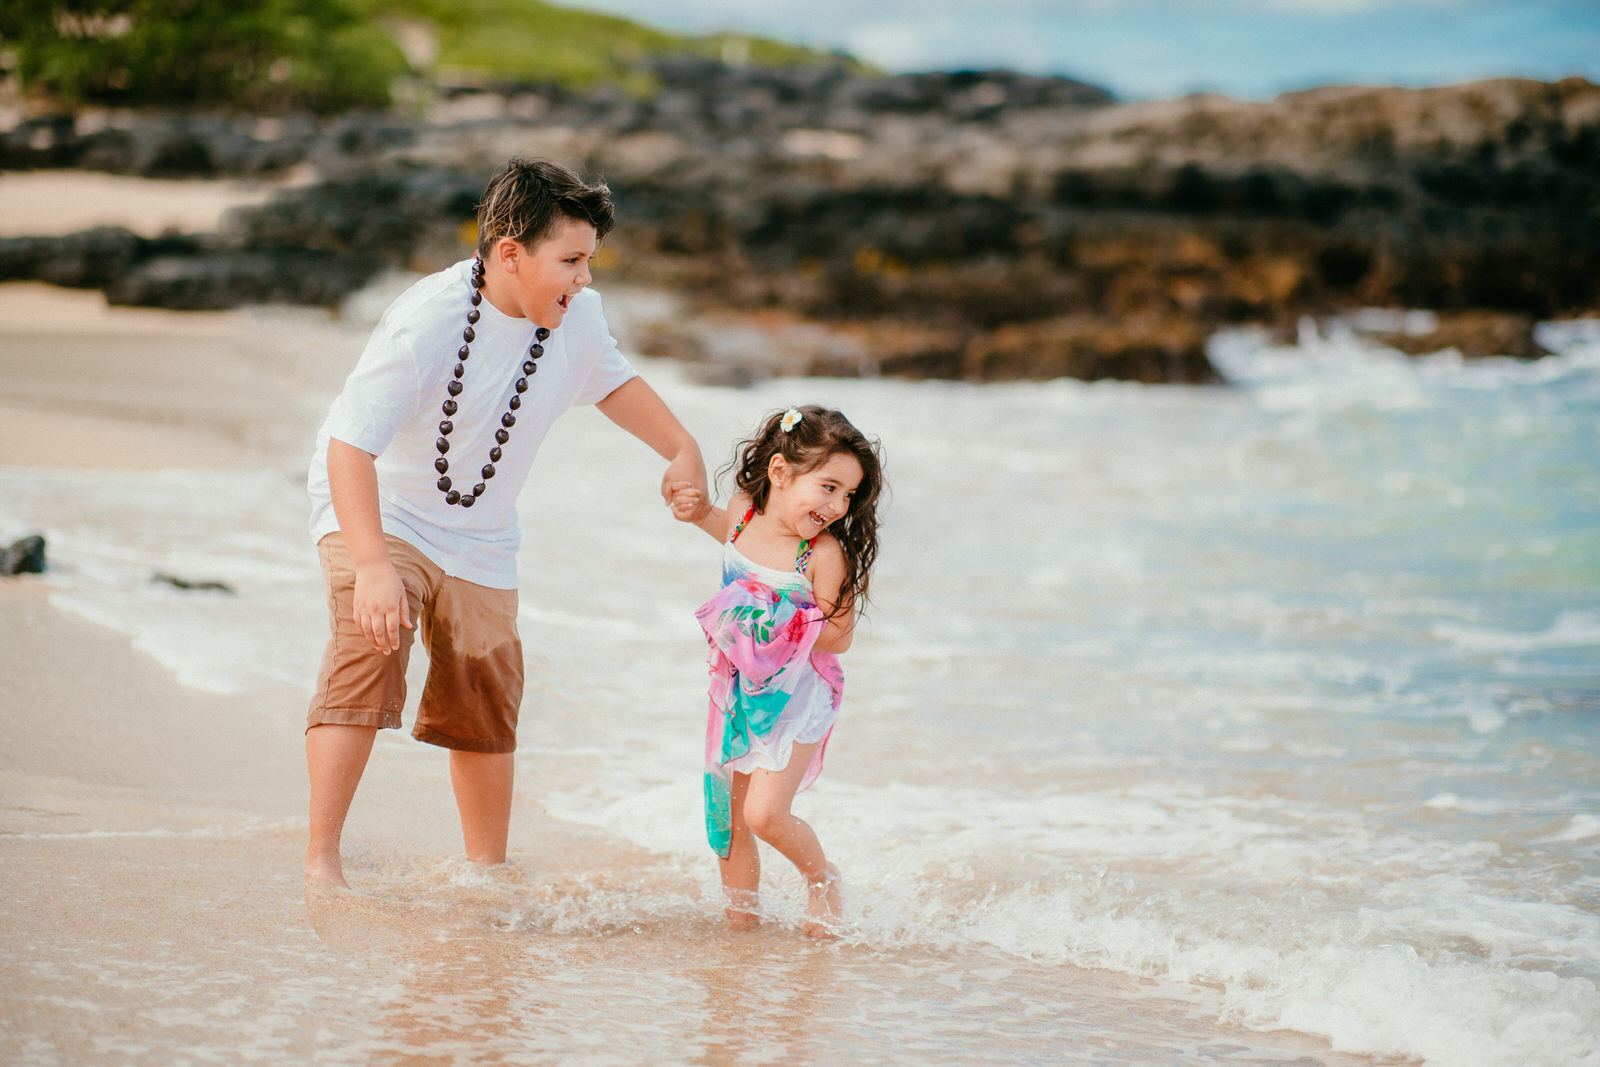 Lopez Family Vacation on Waimanalo Beach - Hawaii Family Photographer - Ketino Photography15.jpg